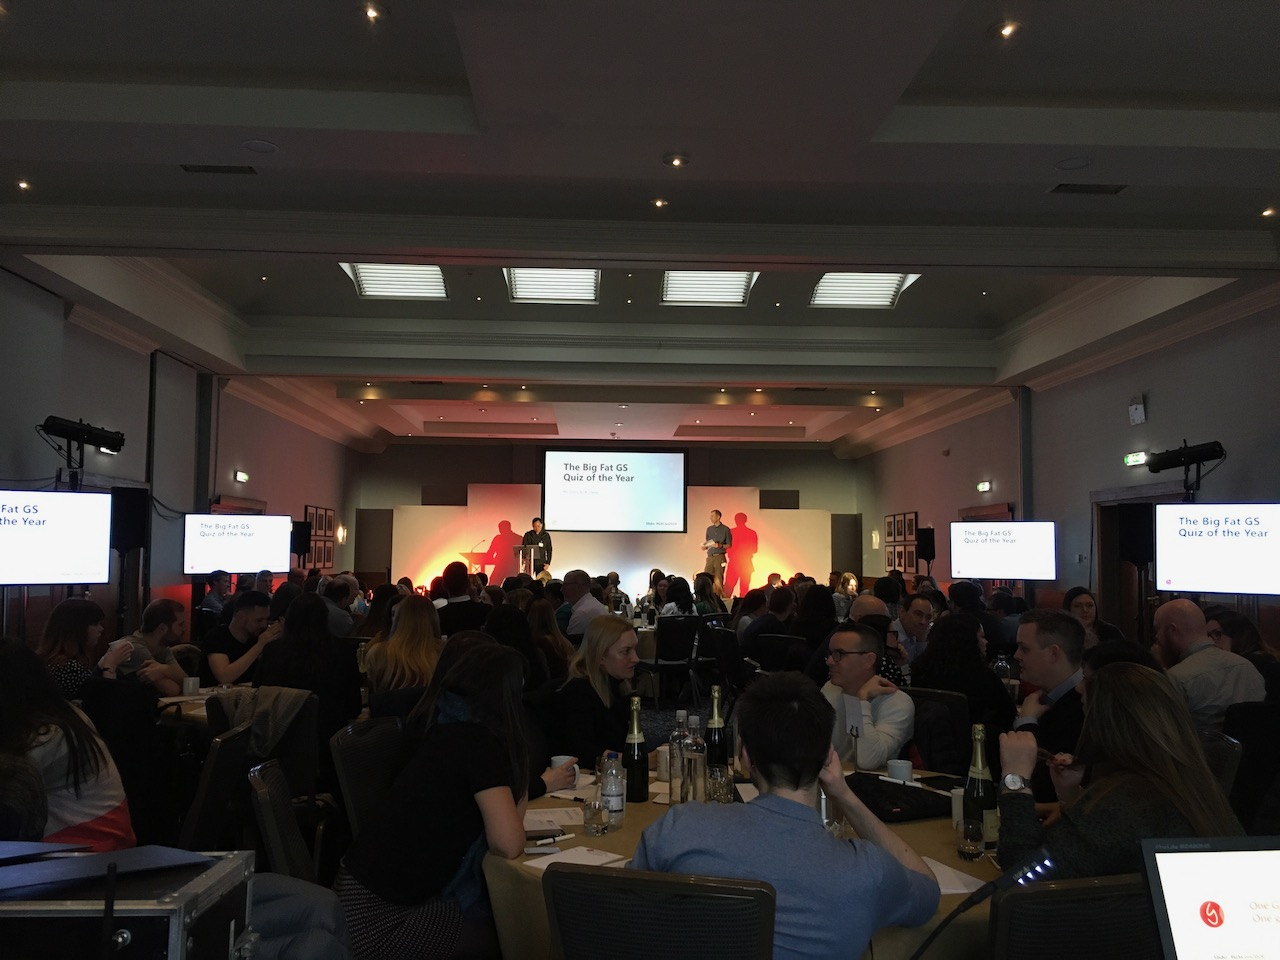 Conference screens with stage set, lighting and lectern